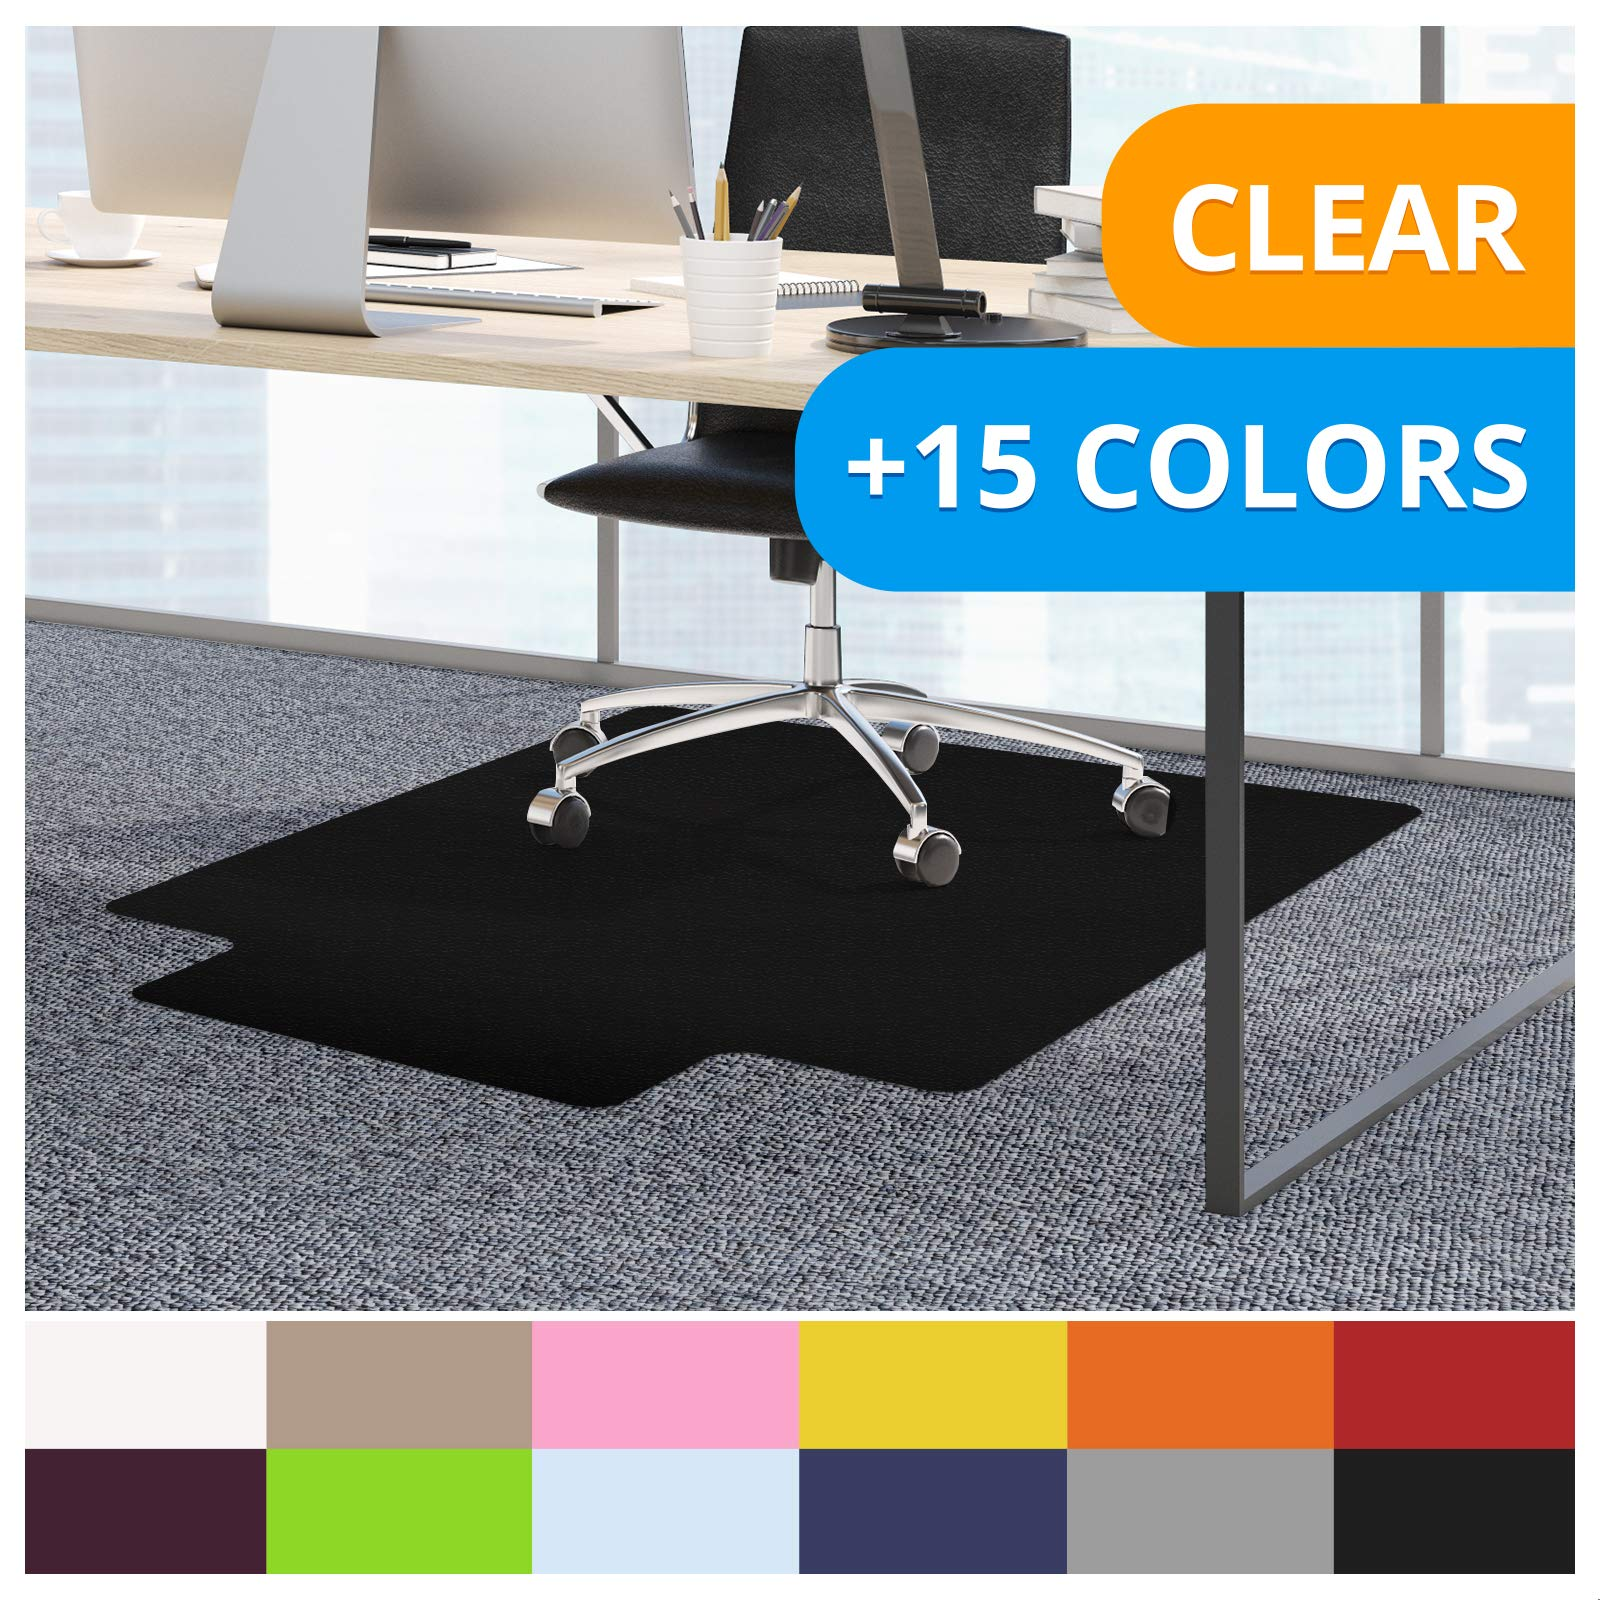 casa pura Office Chair Mats for Carpeted Floors - 36''x48'' with Lip | Carpet Protector Floor Mat, Black - BPA Free, Odorless | Matching Desk Mats Available